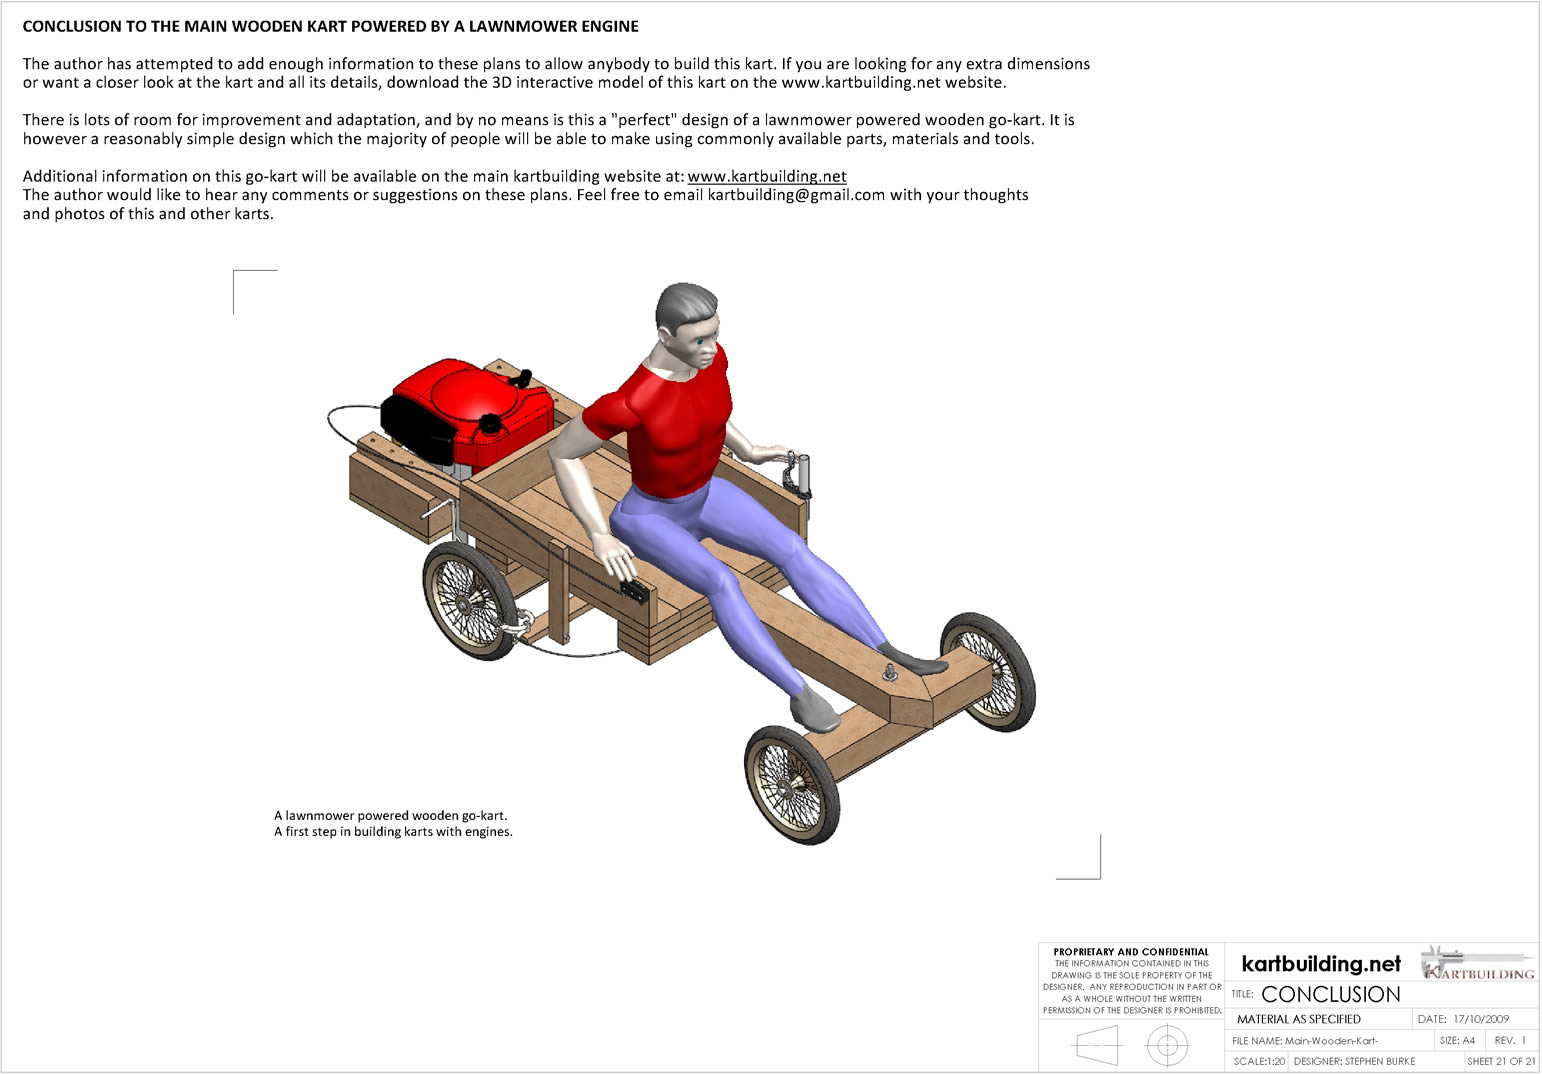 1542x1074 Lawnmower Powered Wooden Go Kart Conclusion To The Set Of Plans